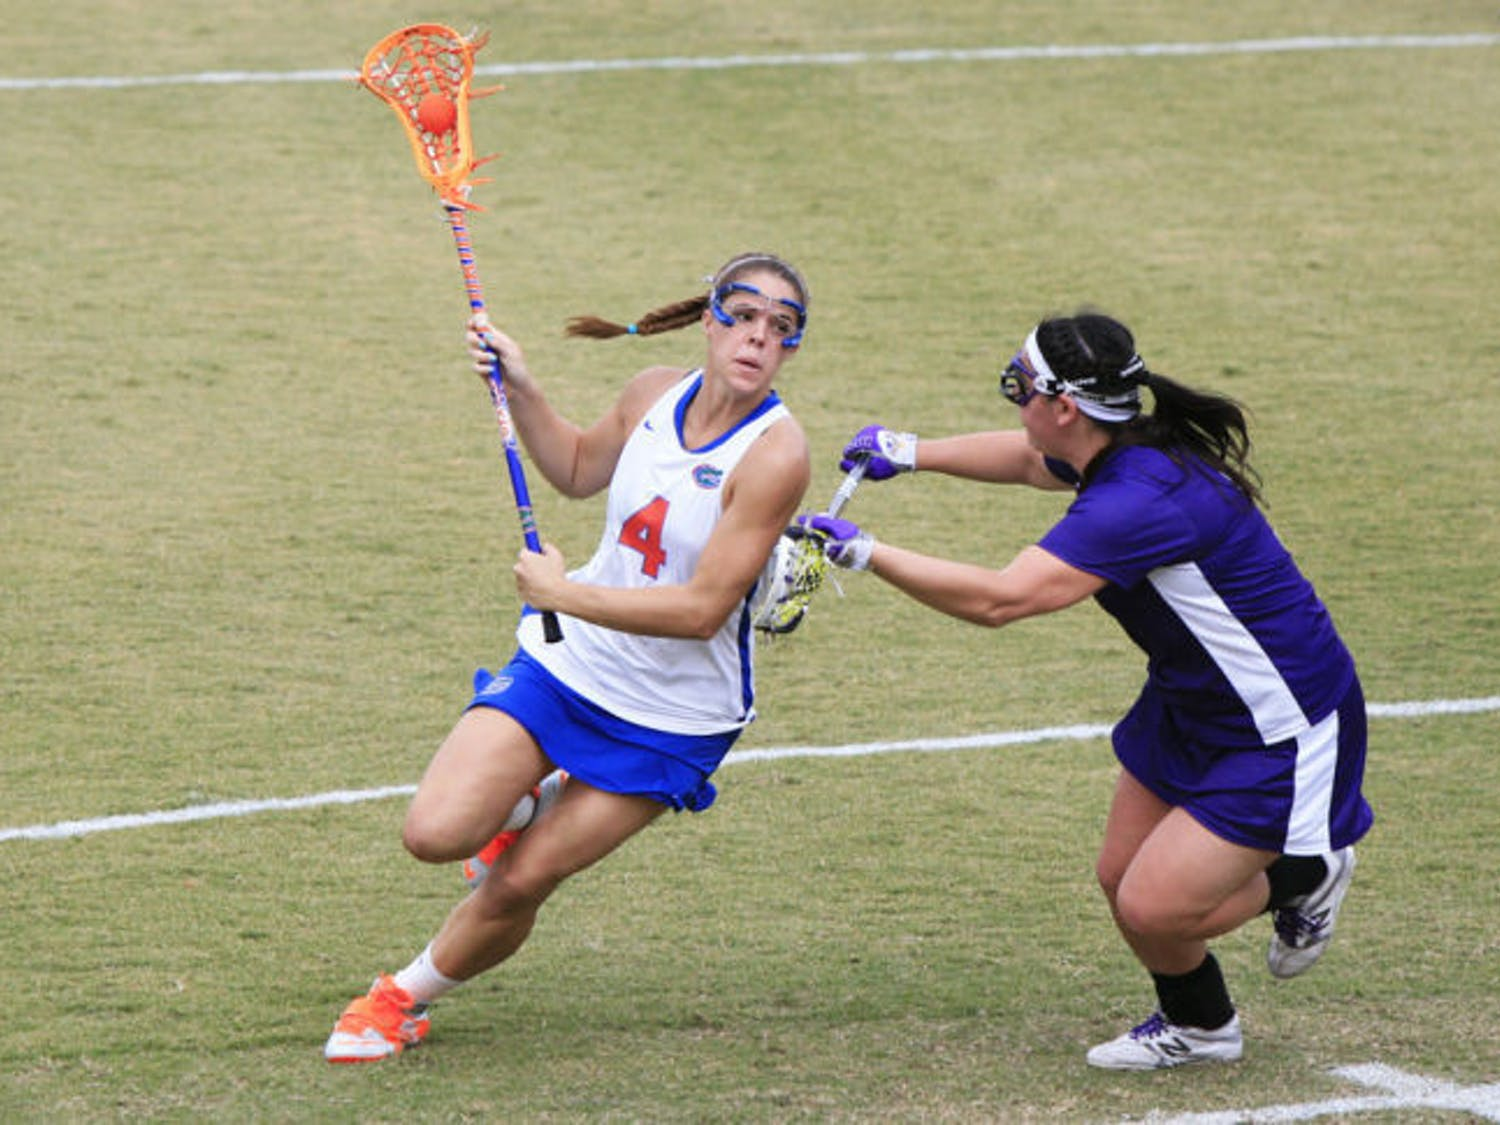 Senior attacker Kitty Cullen looks to score against UAlbany on Feb. 24 at Donald R. Dizney Stadium. Cullen scored two goals in her final game for the Gators.